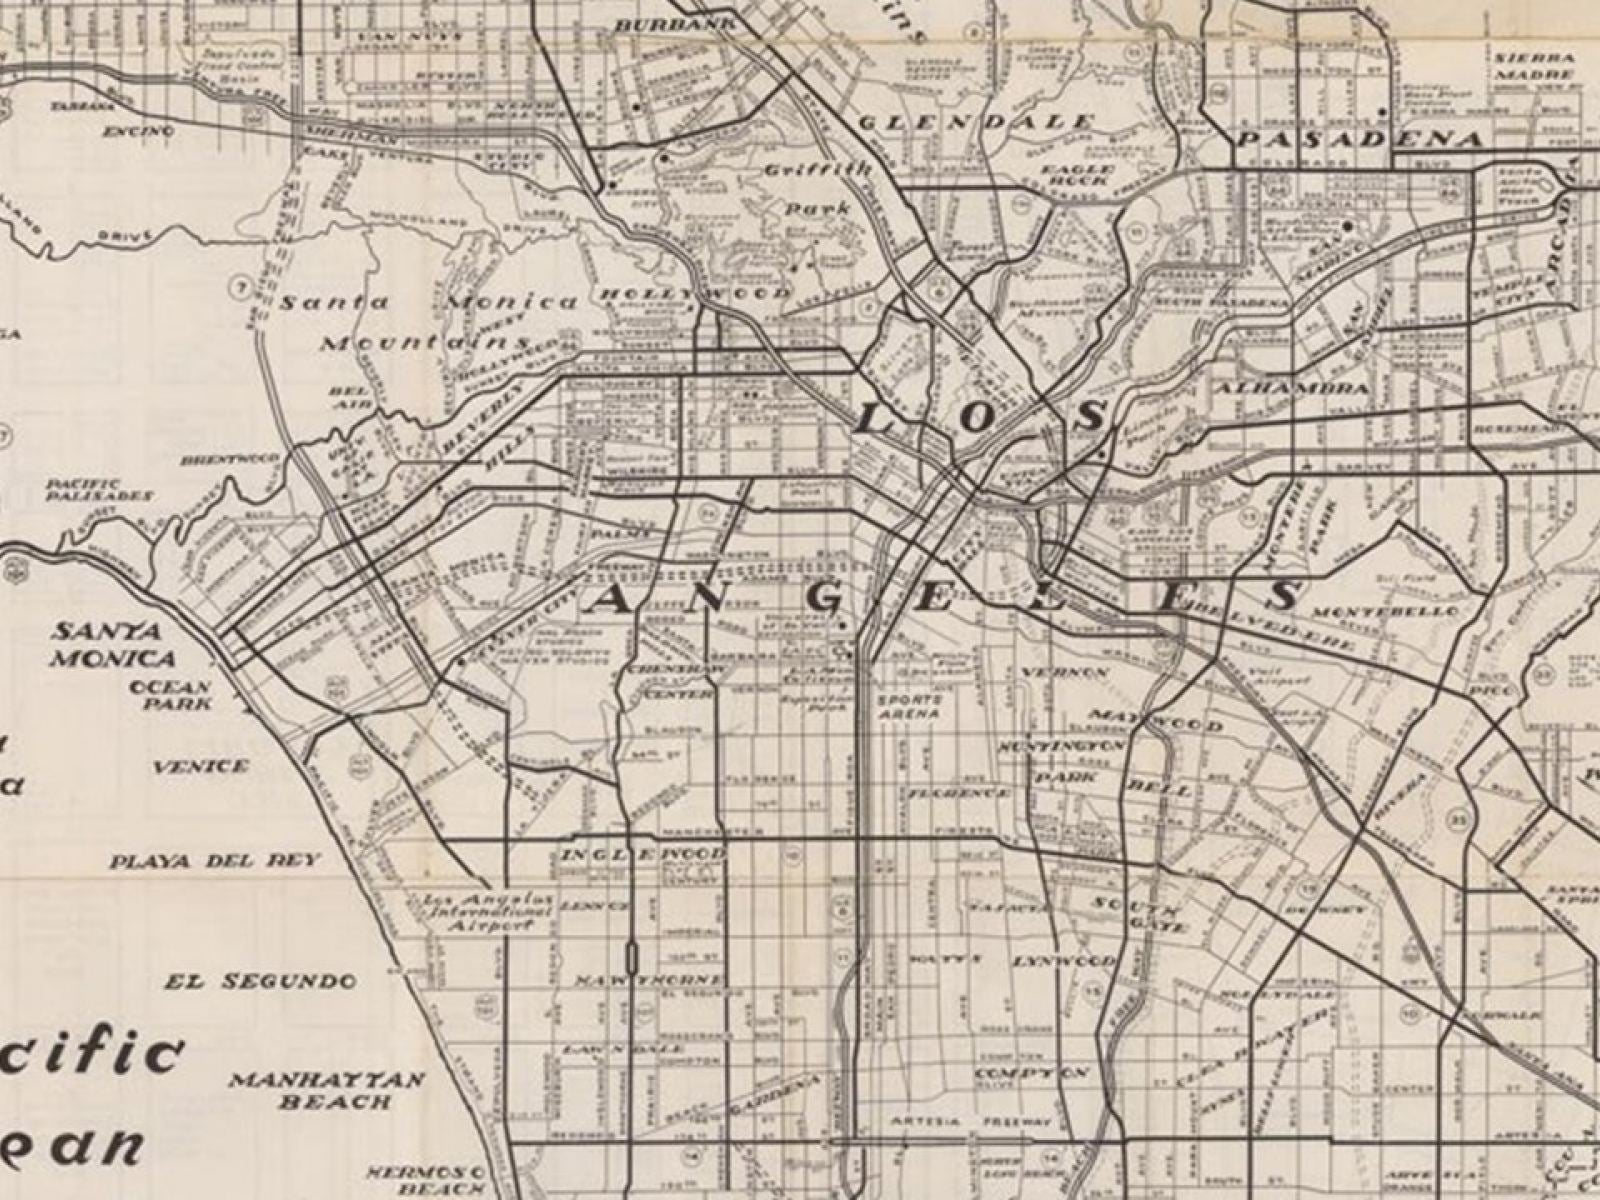 Main image for event titled CRAFTING CARTOGRAPHIES – MAPPING LA: by UCLA's Fowler